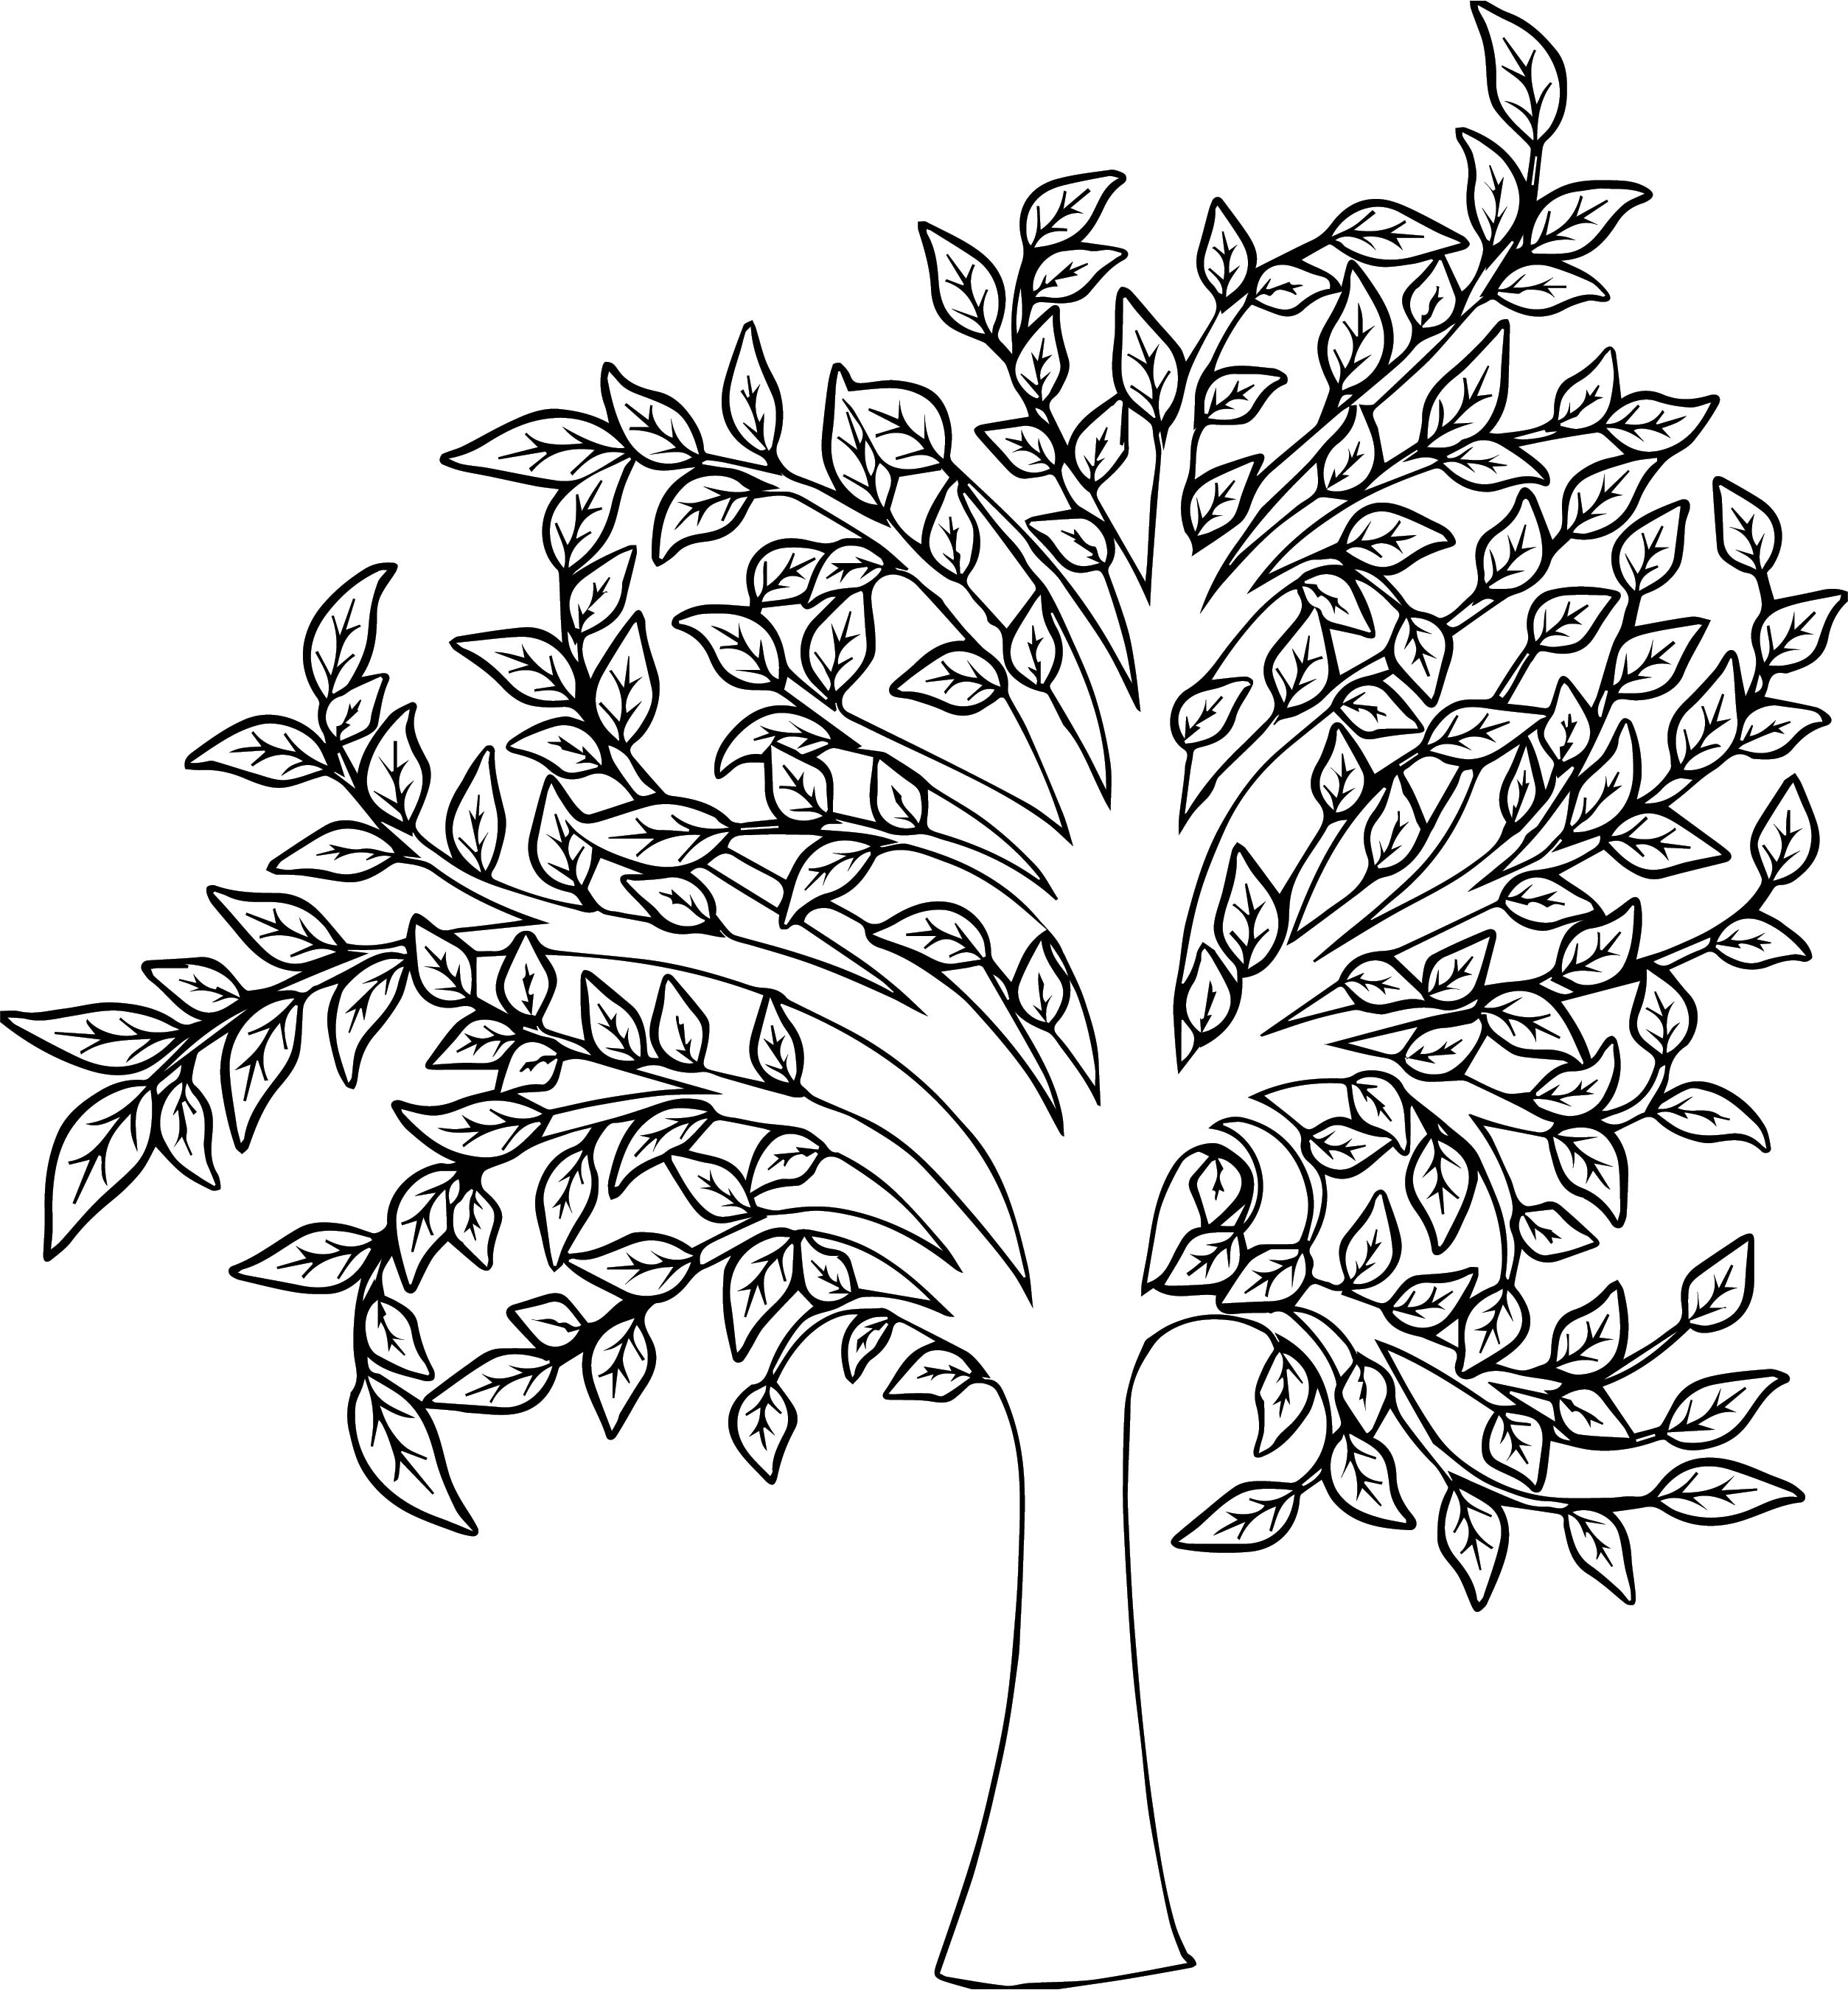 colouring pages of autumn trees autumn coloring pages fall topcoloringpagesnet colouring pages autumn trees of